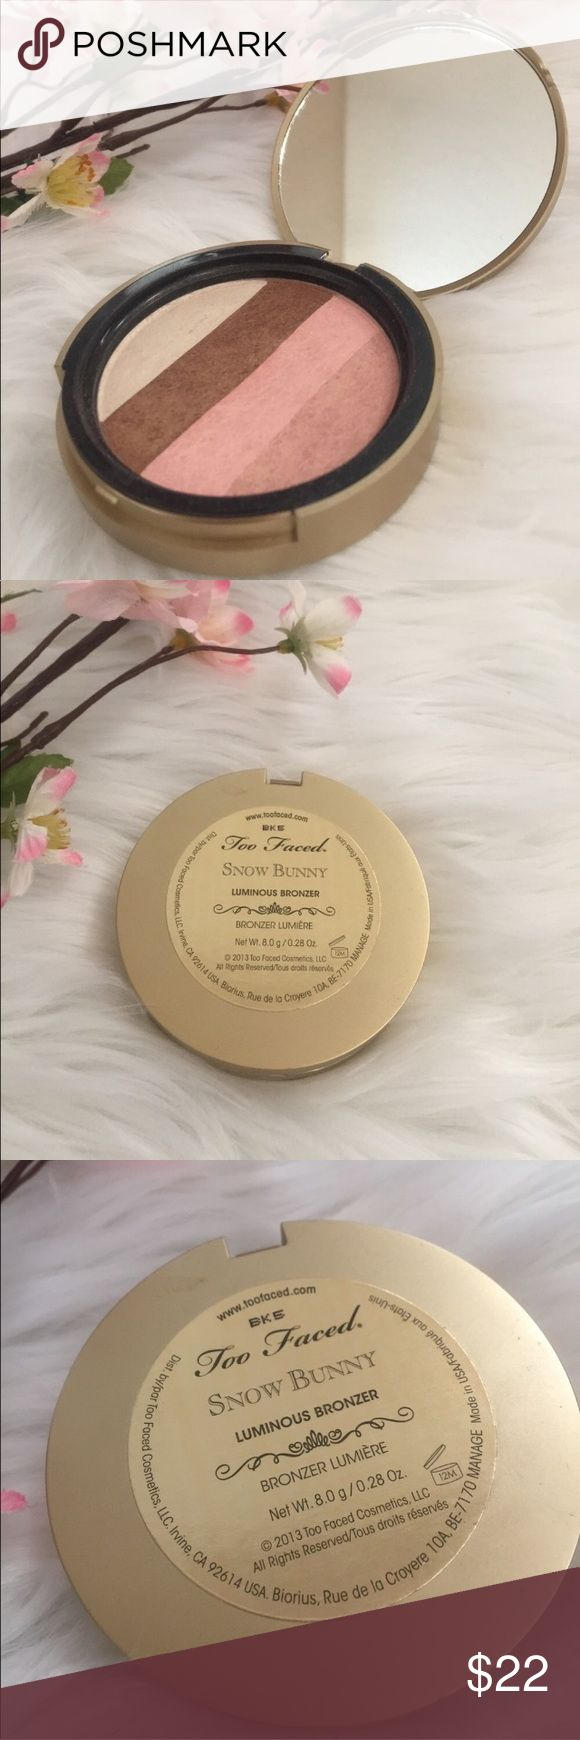 Too Faced Snow Bunny Bronzer Too Faced Snow Bunny Bronzer! Only Used Twice. No Box Included. Too Faced Makeup Bronzer